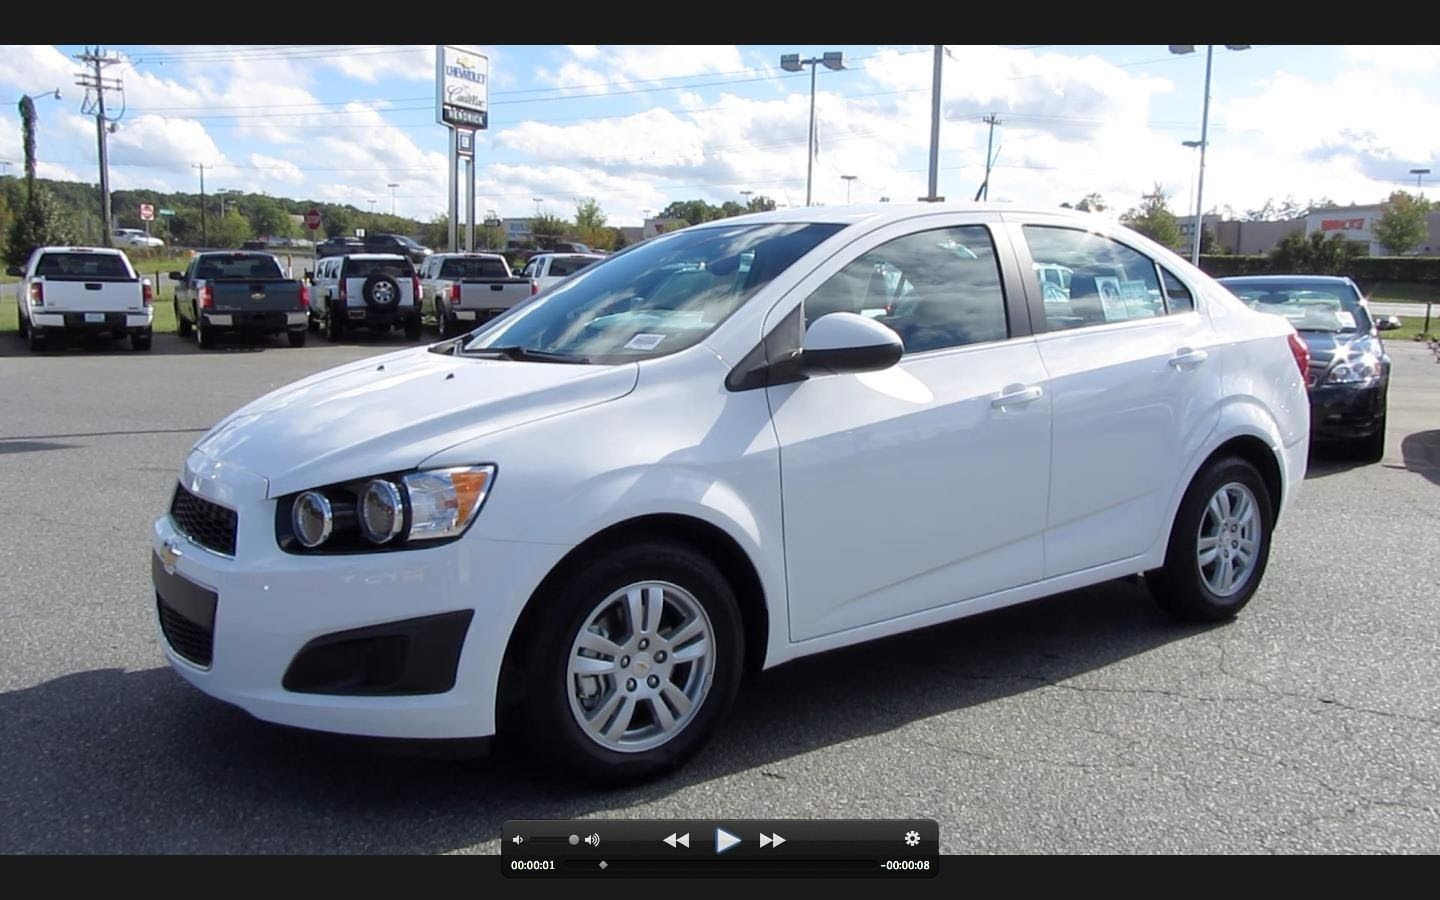 2012 Chevrolet Sonic Lt Start Up Engine And In Depth Tour Chevrolet Sonic Chevrolet Sonic